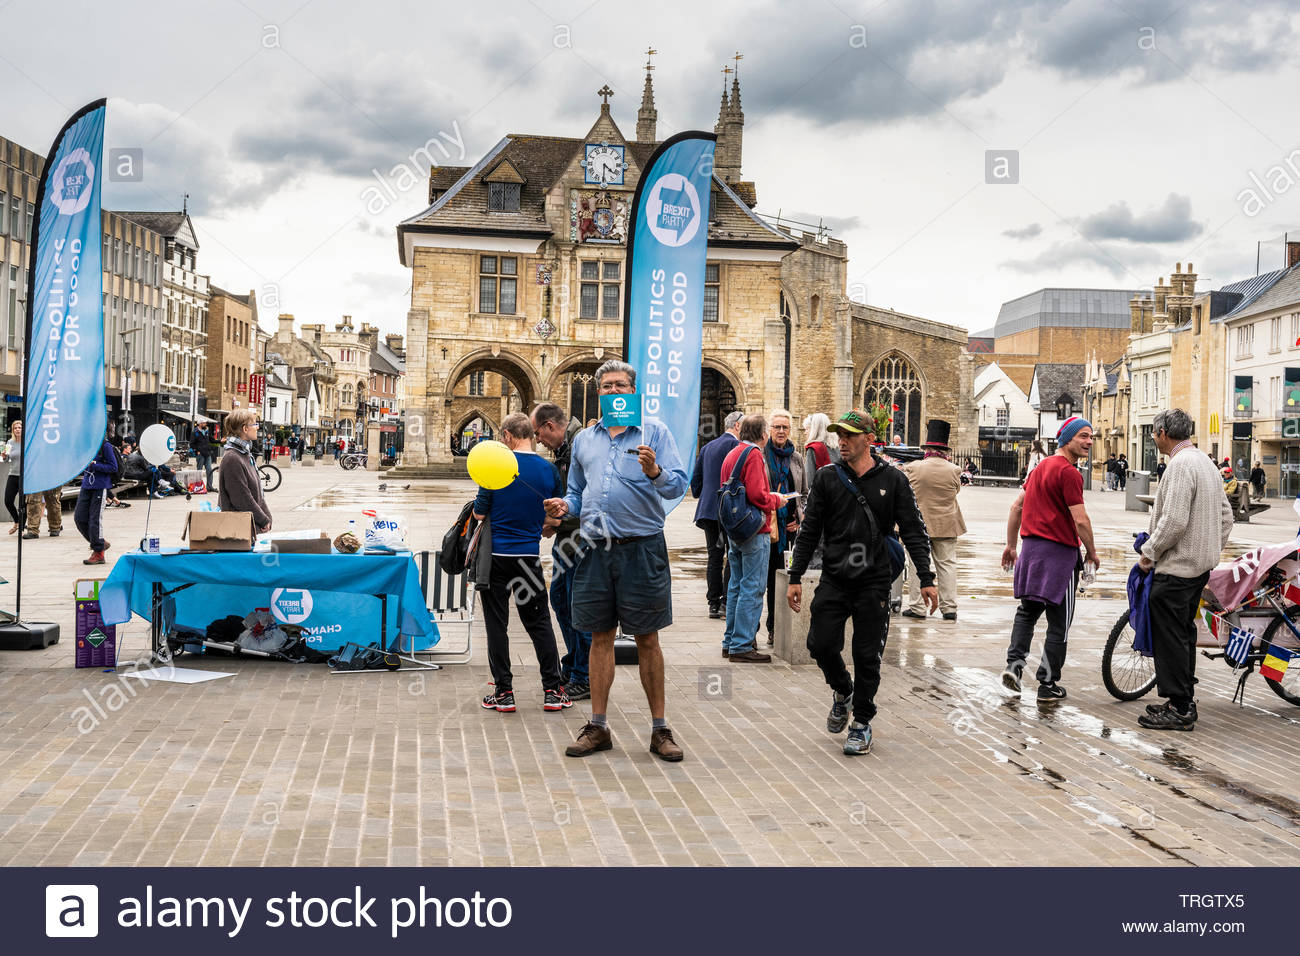 The Brexit Party campaign for the June 2019 Parliamentary by-election in Cathedral Square, Peterborough Stock Photo